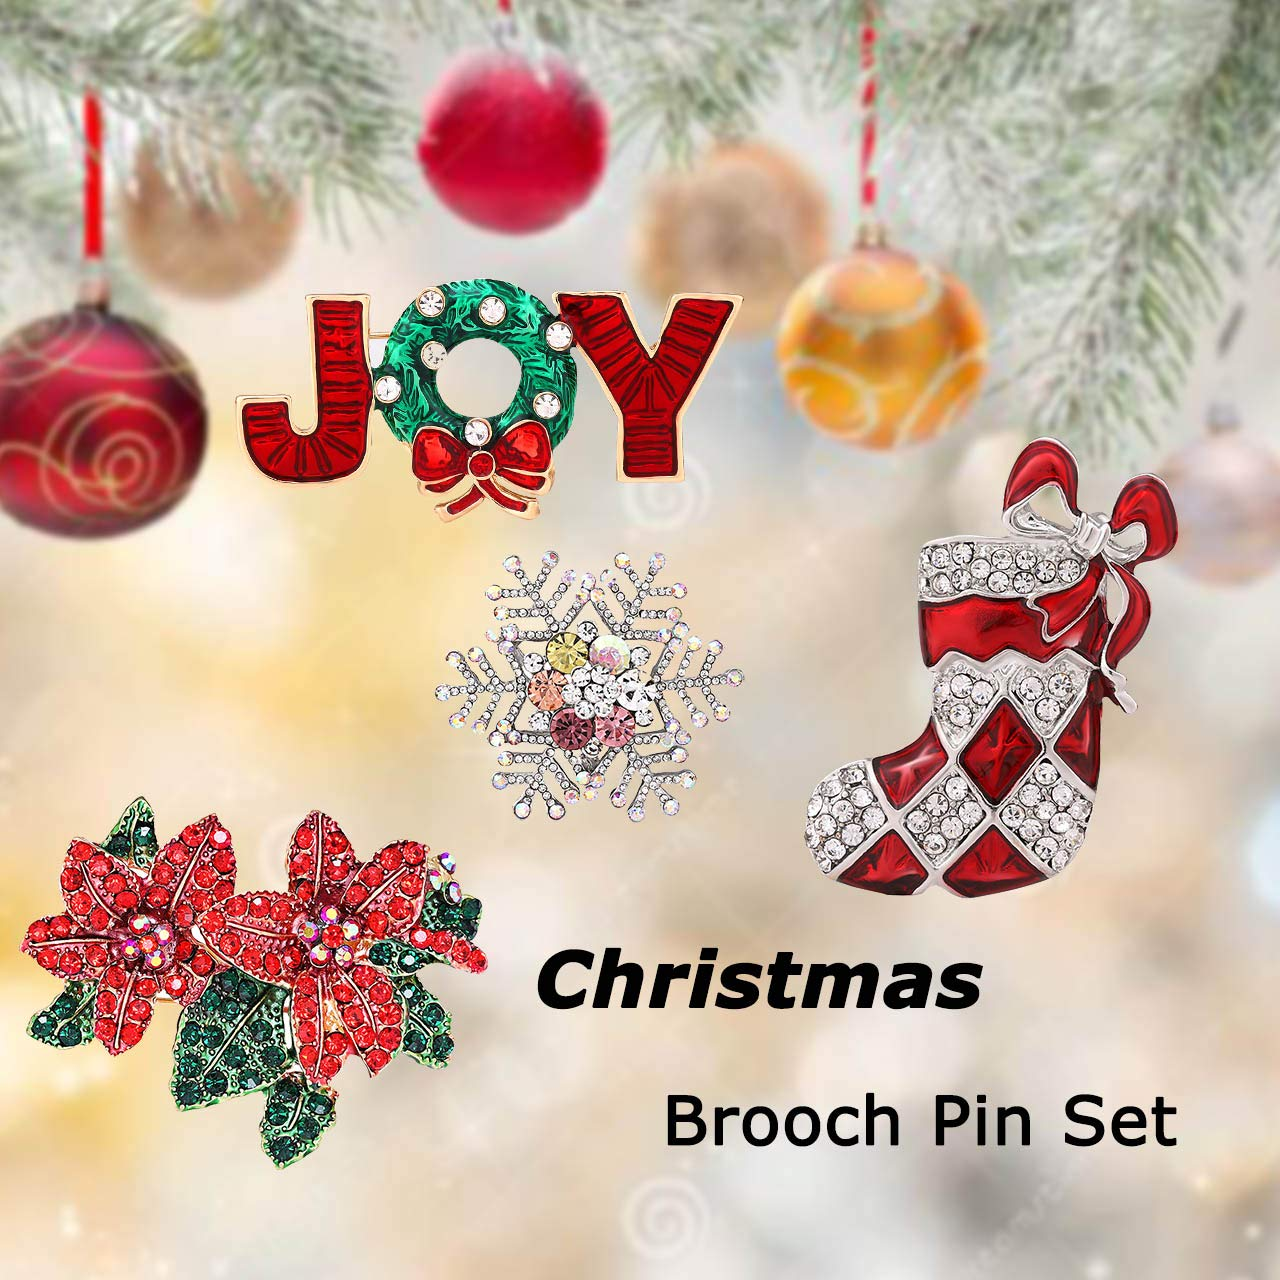 CEALXHENY Christmas Brooch Pins Set Crystal Christmas Tree Snowflake Reindeer Jingle Bell Brooches Holiday Party Gift for Women Girls